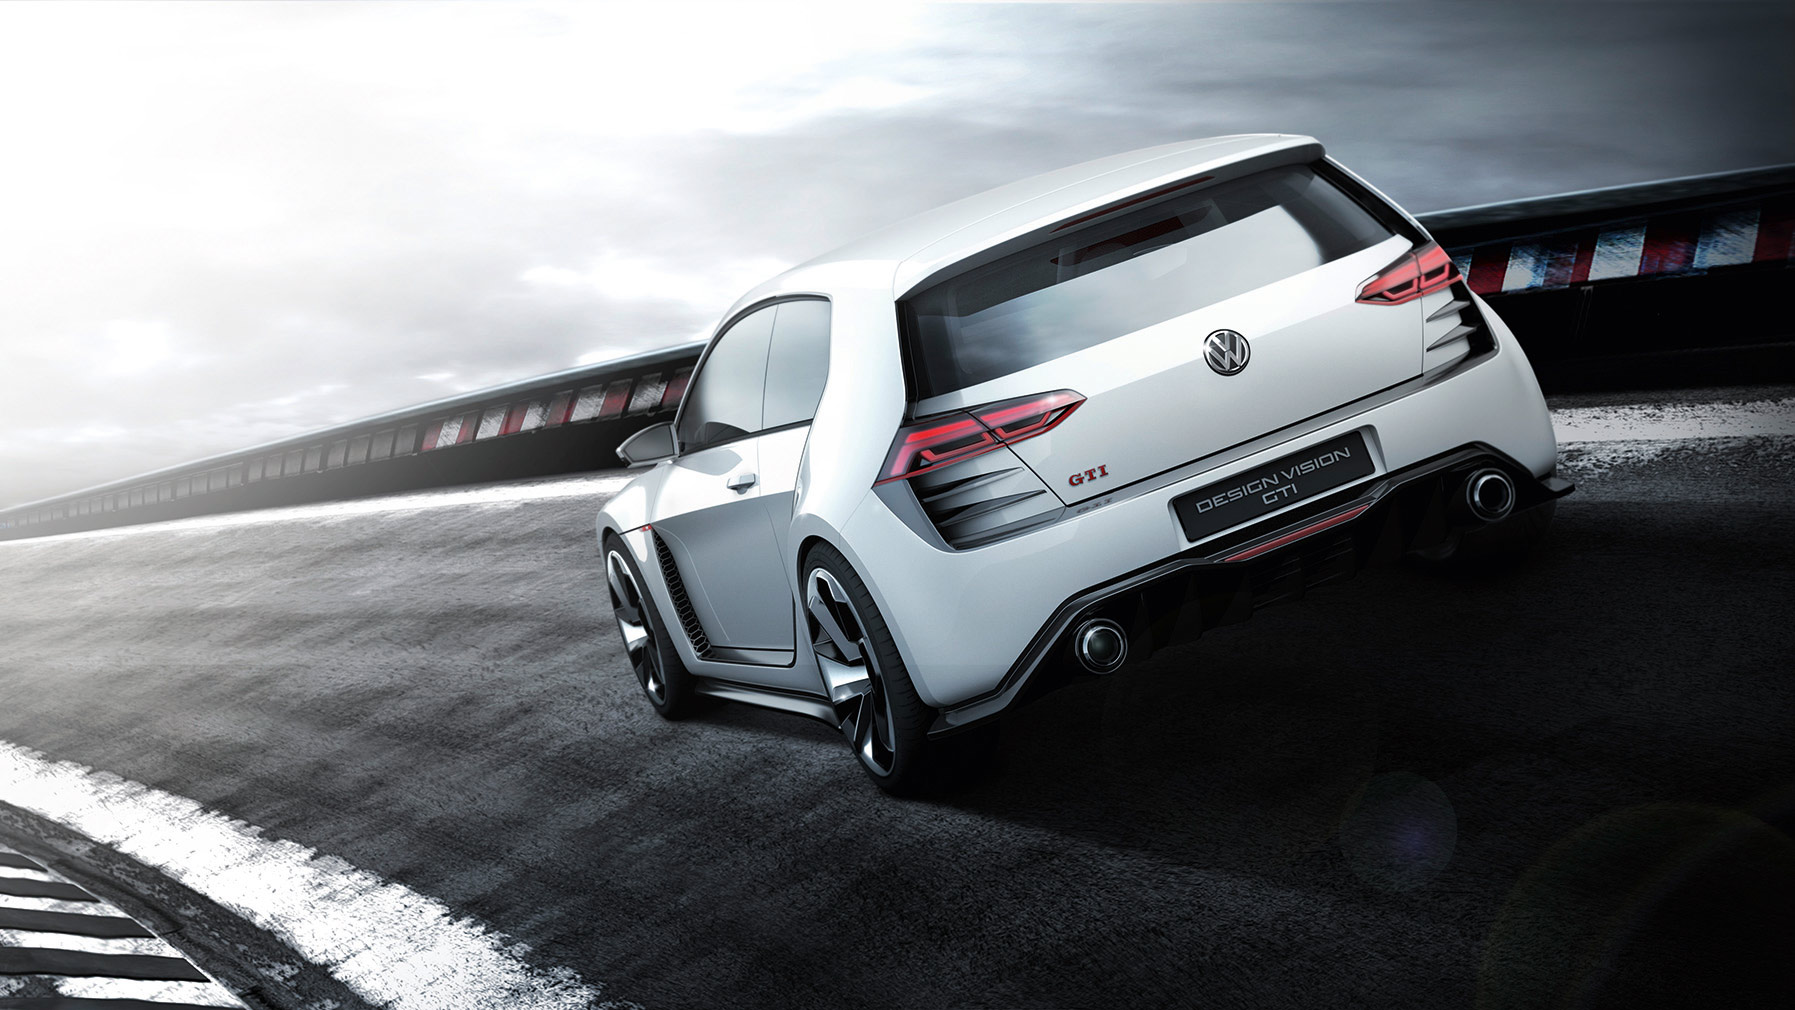 volkswagen-design-vision-gti-worthersee-006